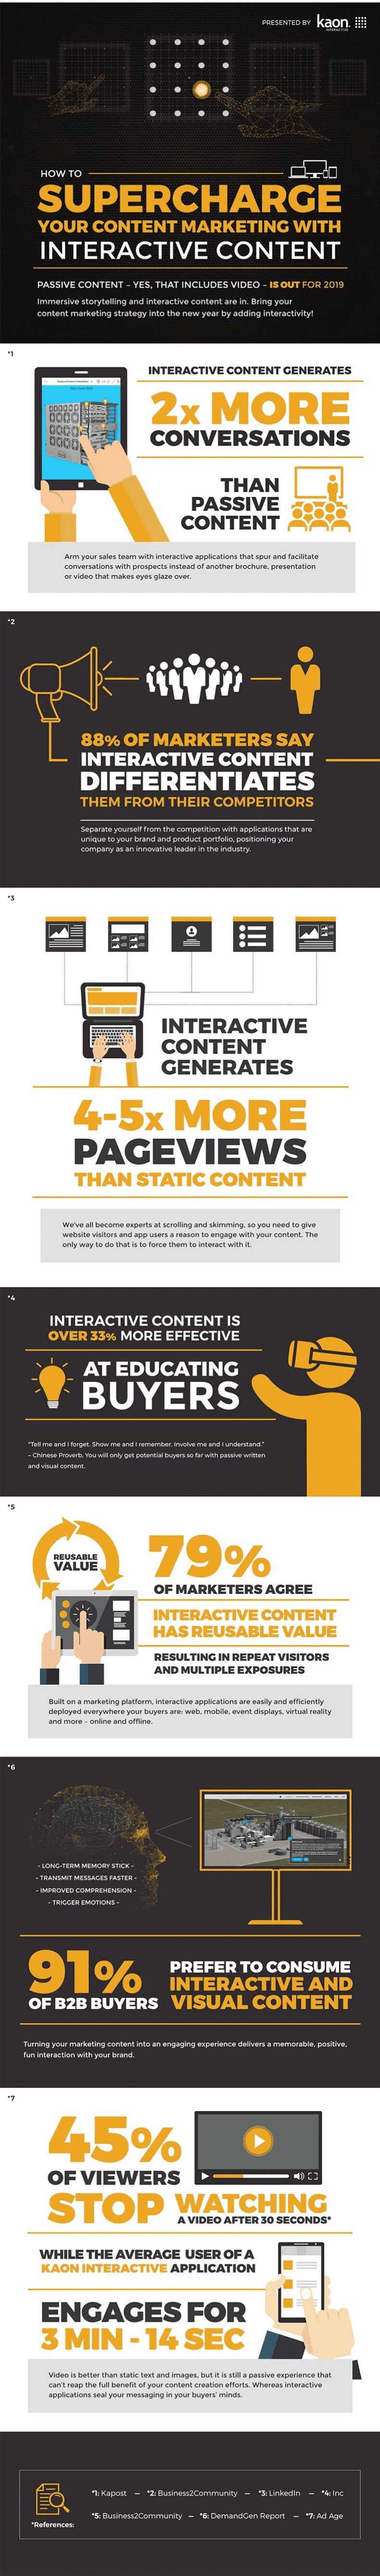 Get ready and start to supercharge your content marketing strategy with interactive content, with this amazing infographic!